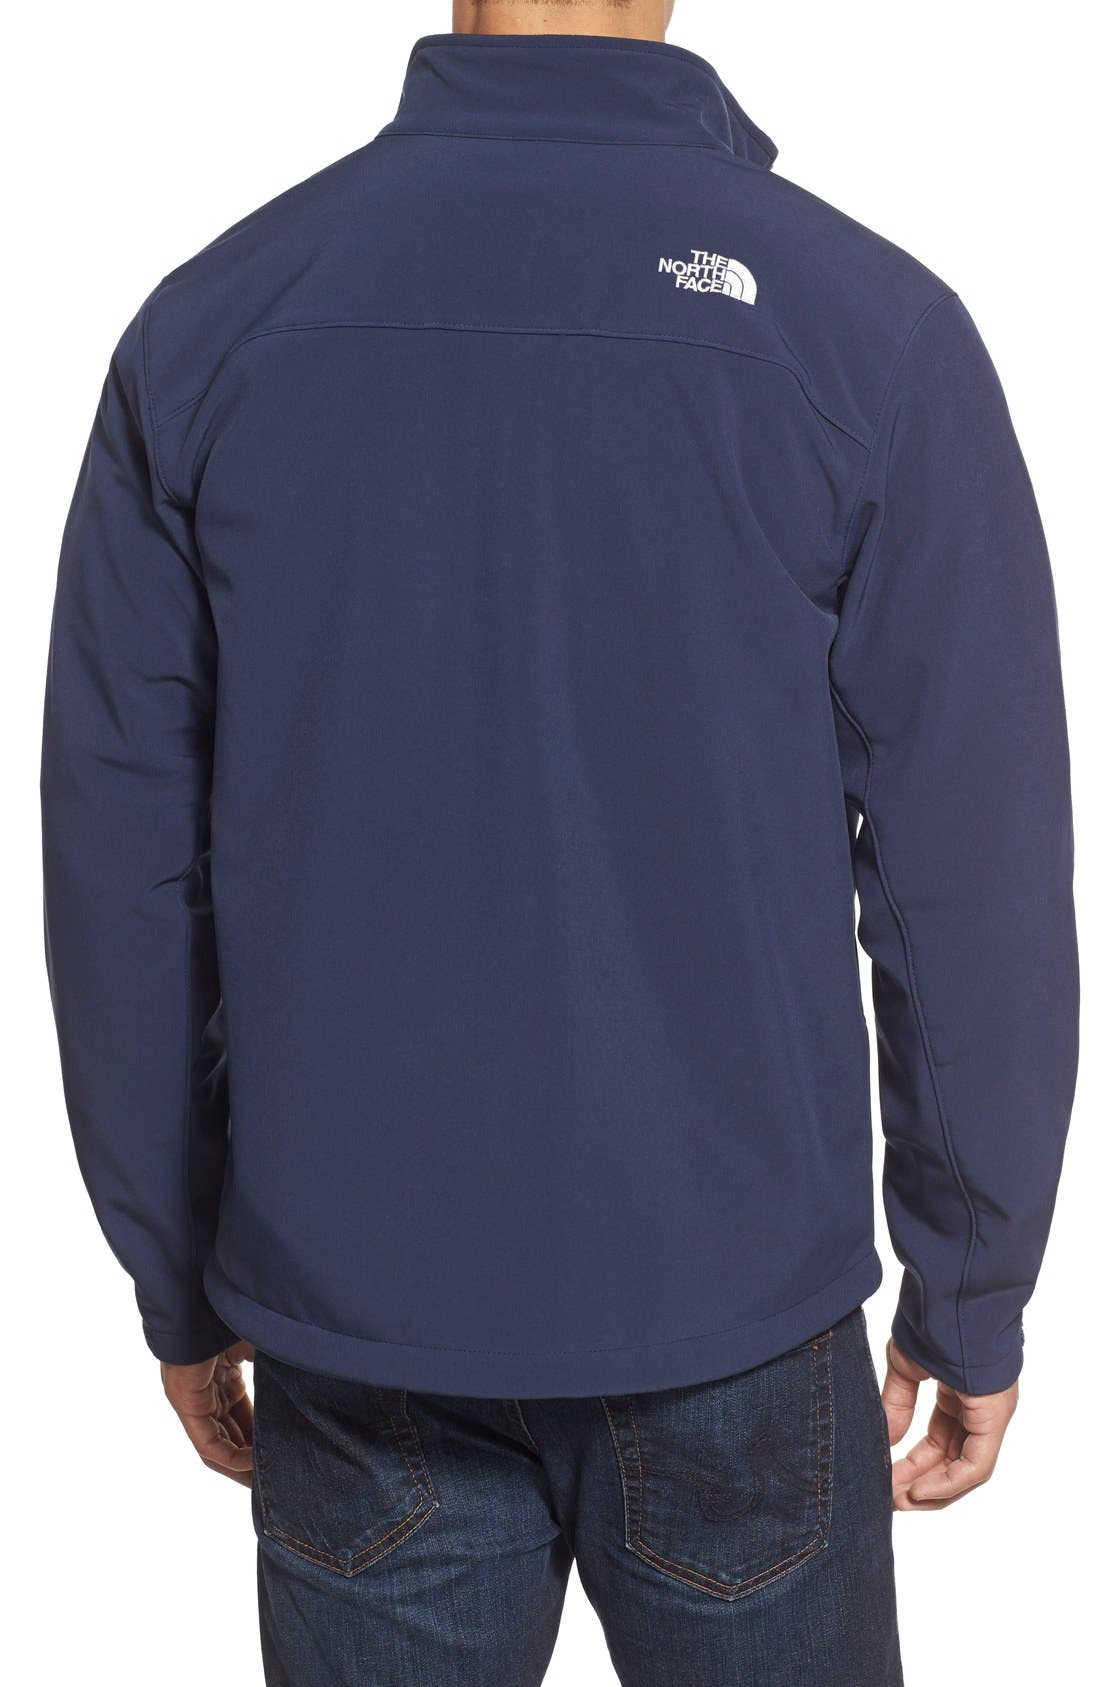 Alternate Image 2  - The North Face 'Apex Bionic' ClimateBlock™ Windproof & Water Resistant Softshell Jacket